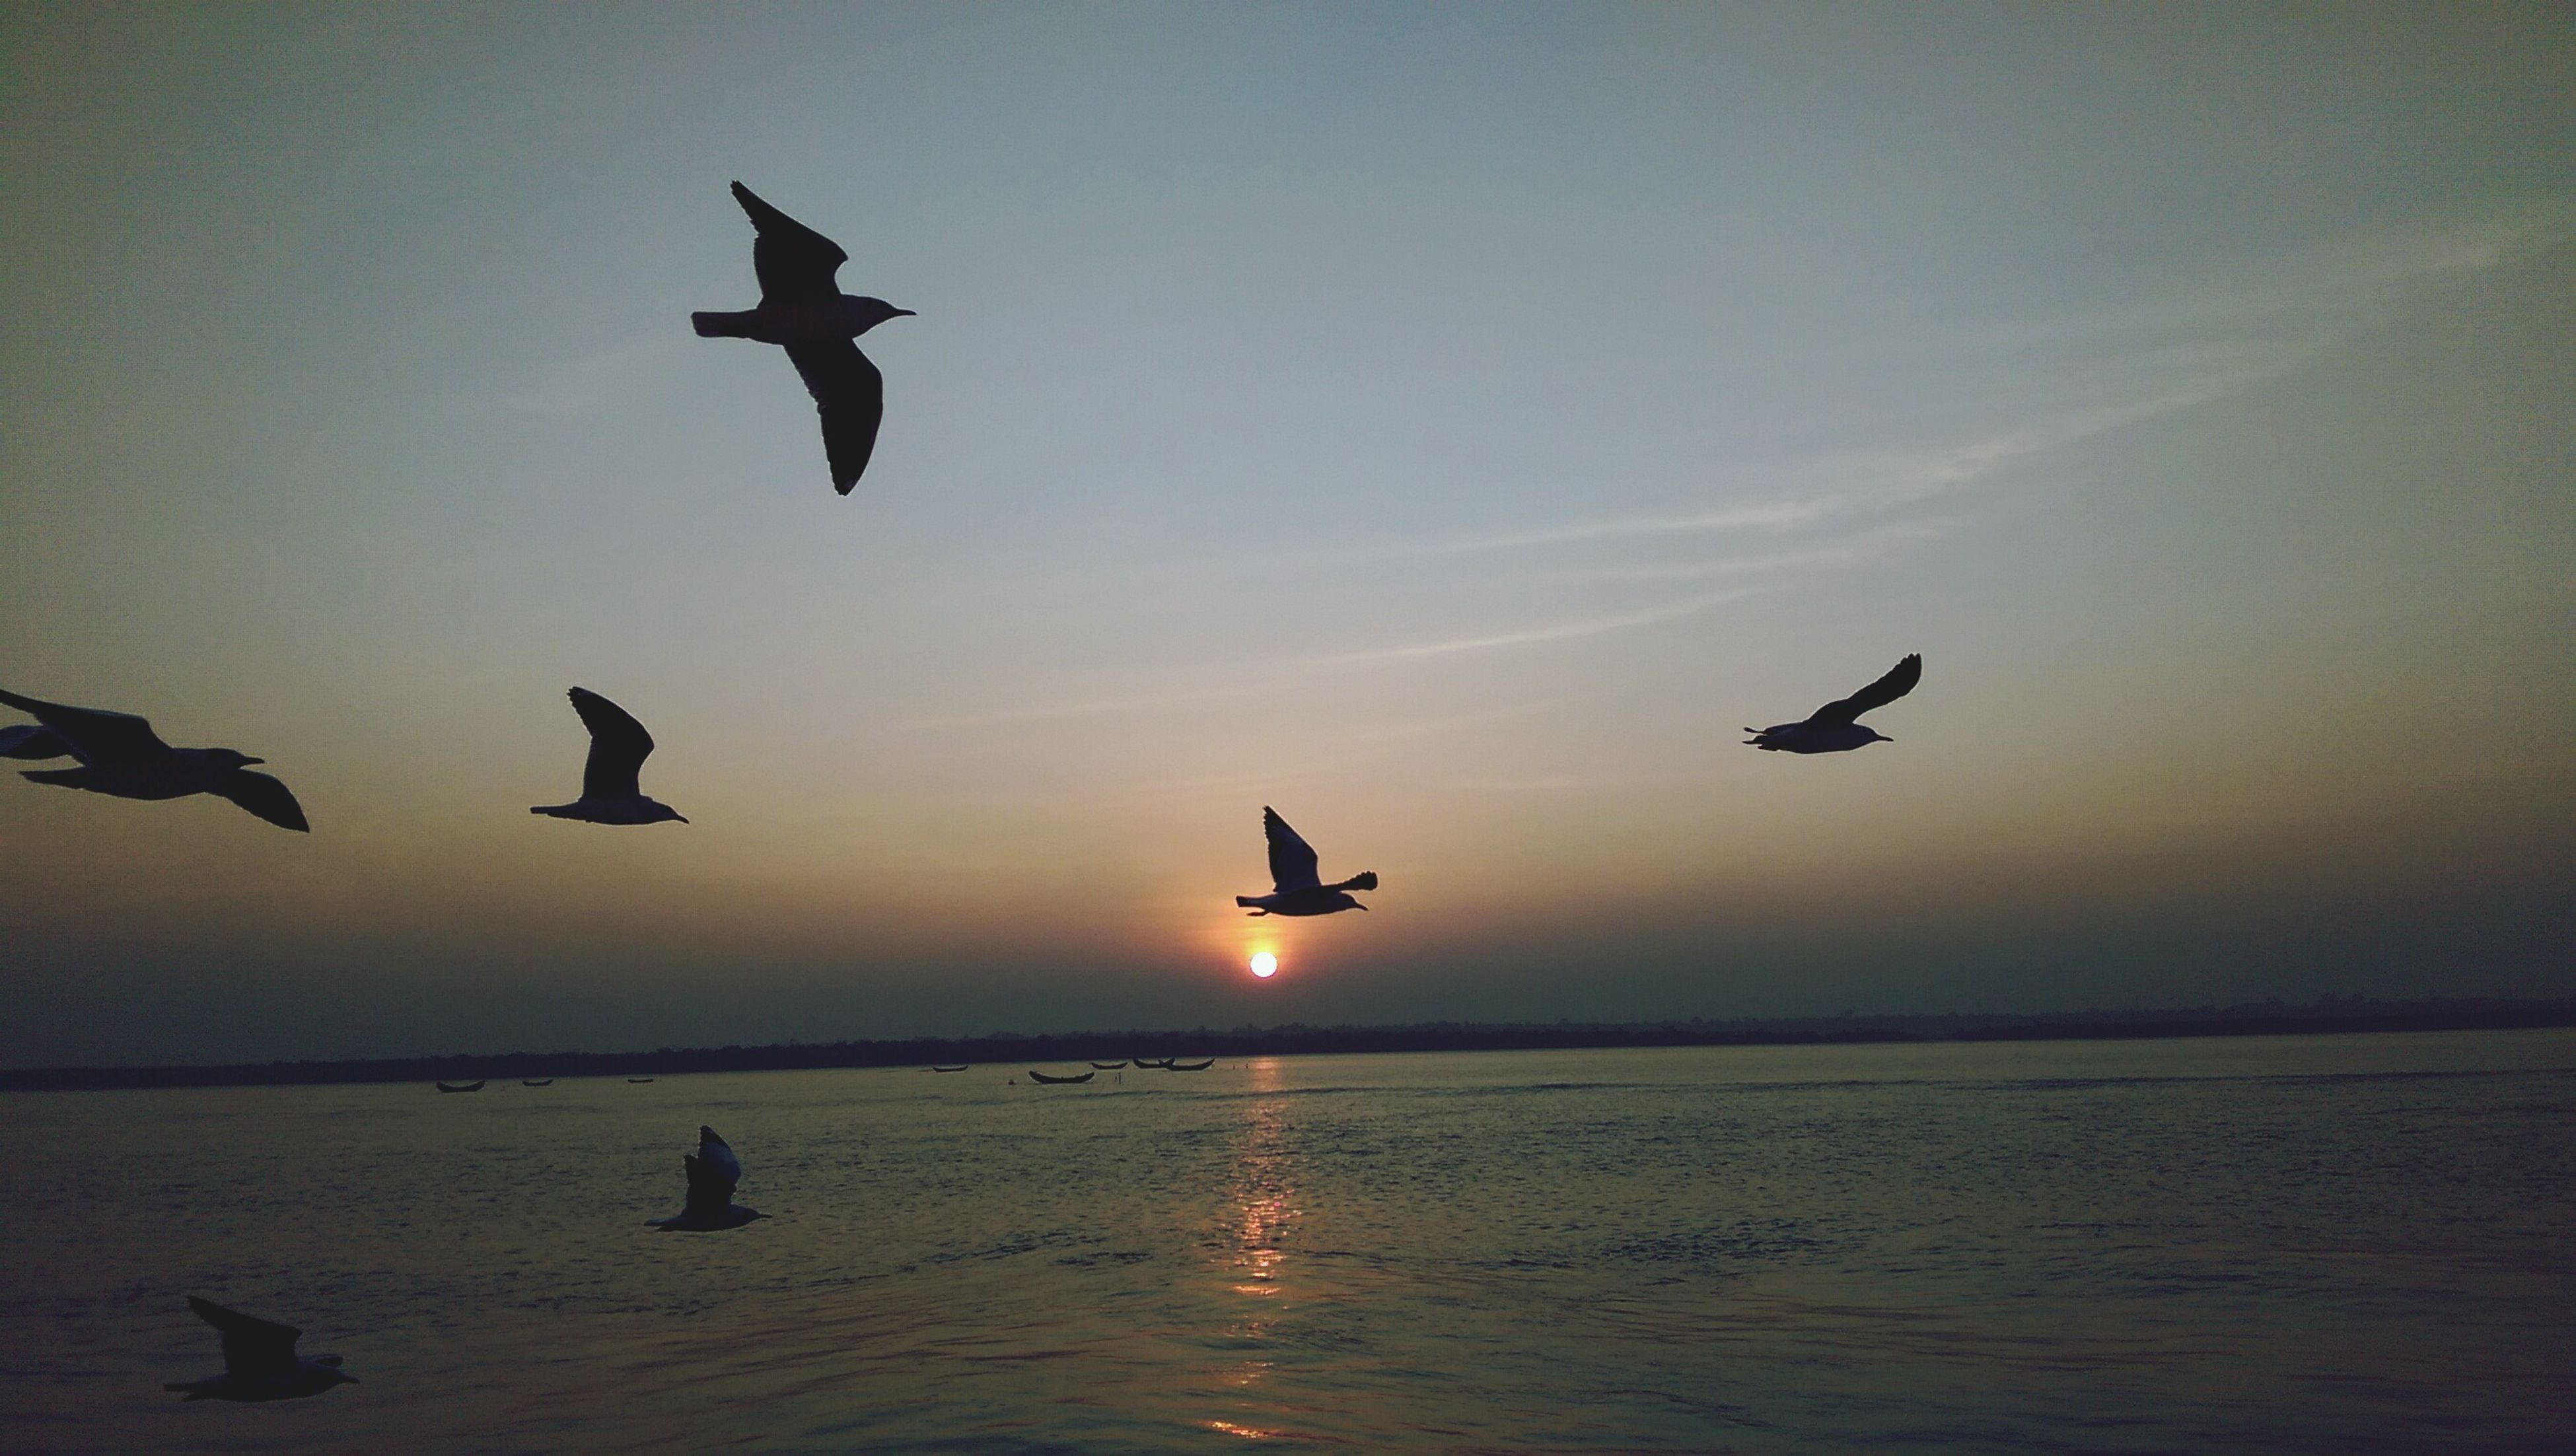 bird, flying, animal themes, animals in the wild, wildlife, mid-air, spread wings, sunset, silhouette, water, sky, flock of birds, seagull, sun, nature, sea, medium group of animals, beauty in nature, scenics